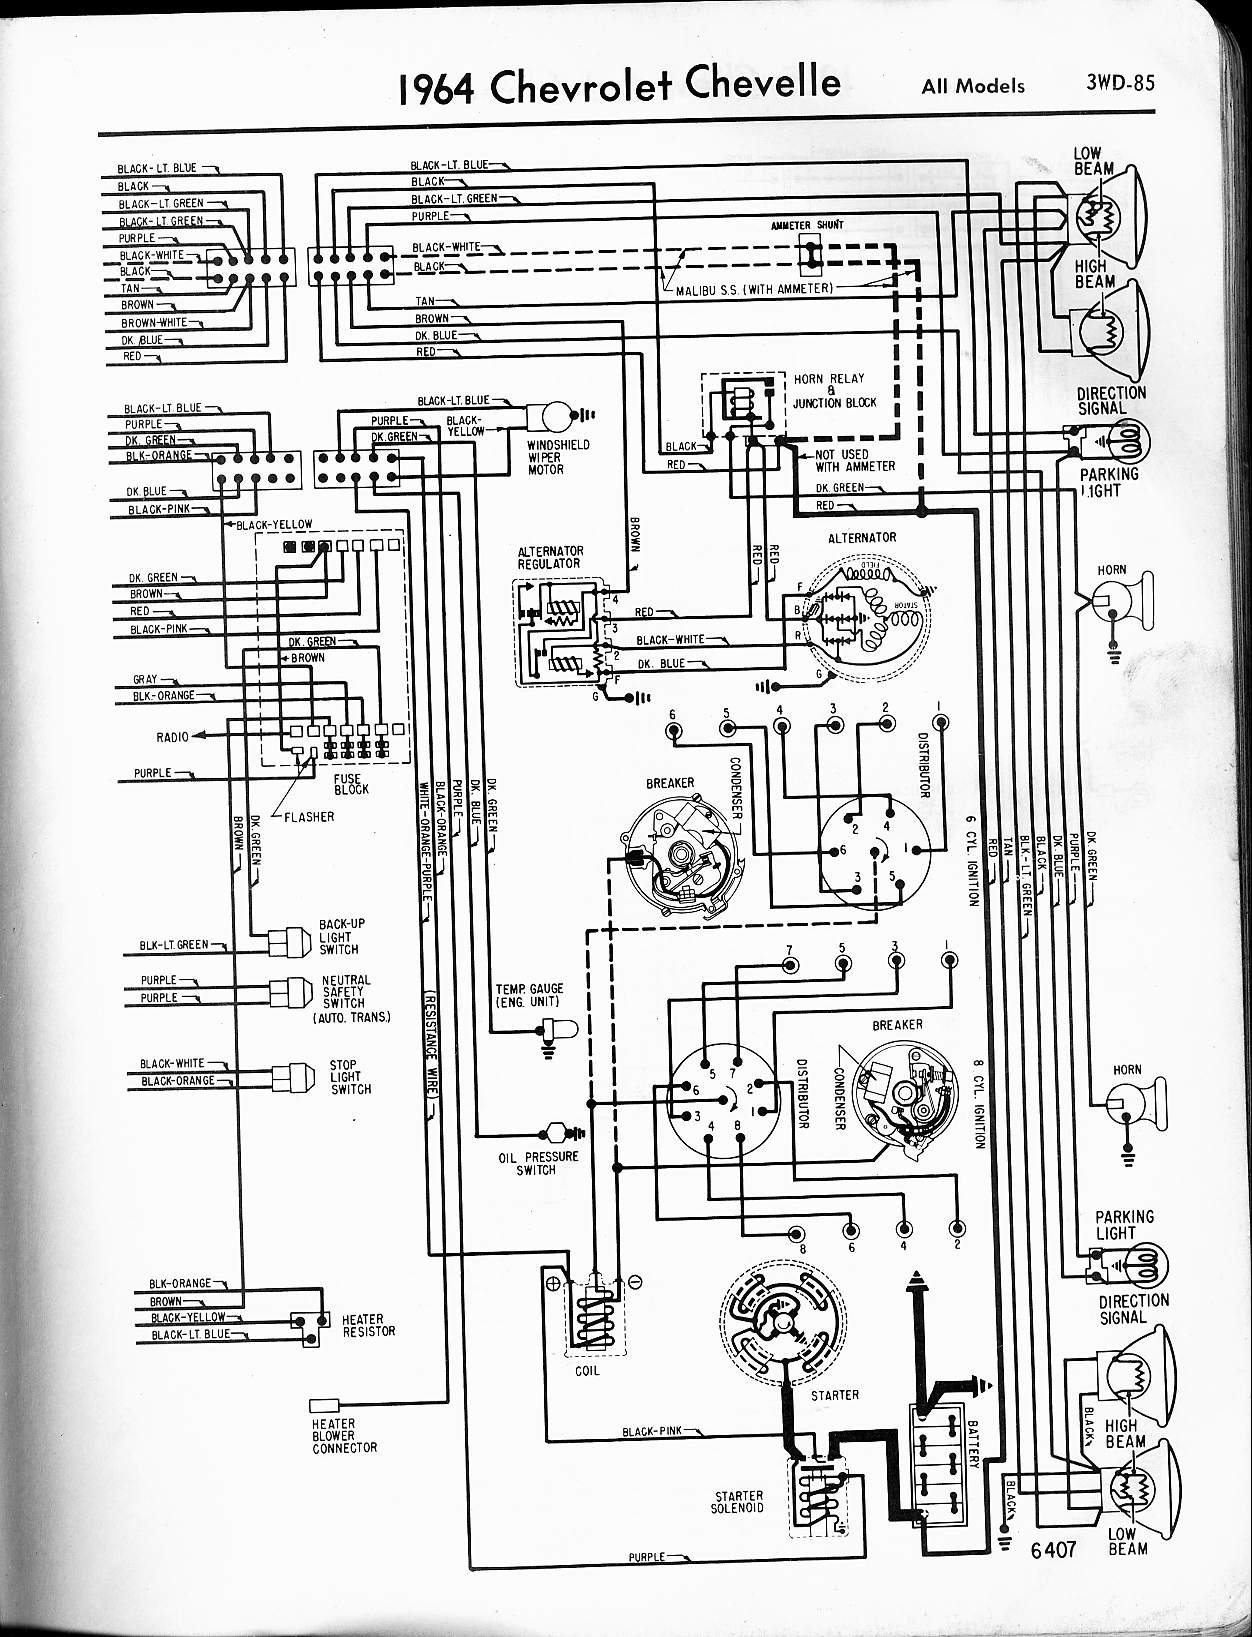 el camino wiring diagram wiring diagram for 1970 chevelle the wiring diagram el camino wiring diagram for 64 el printable